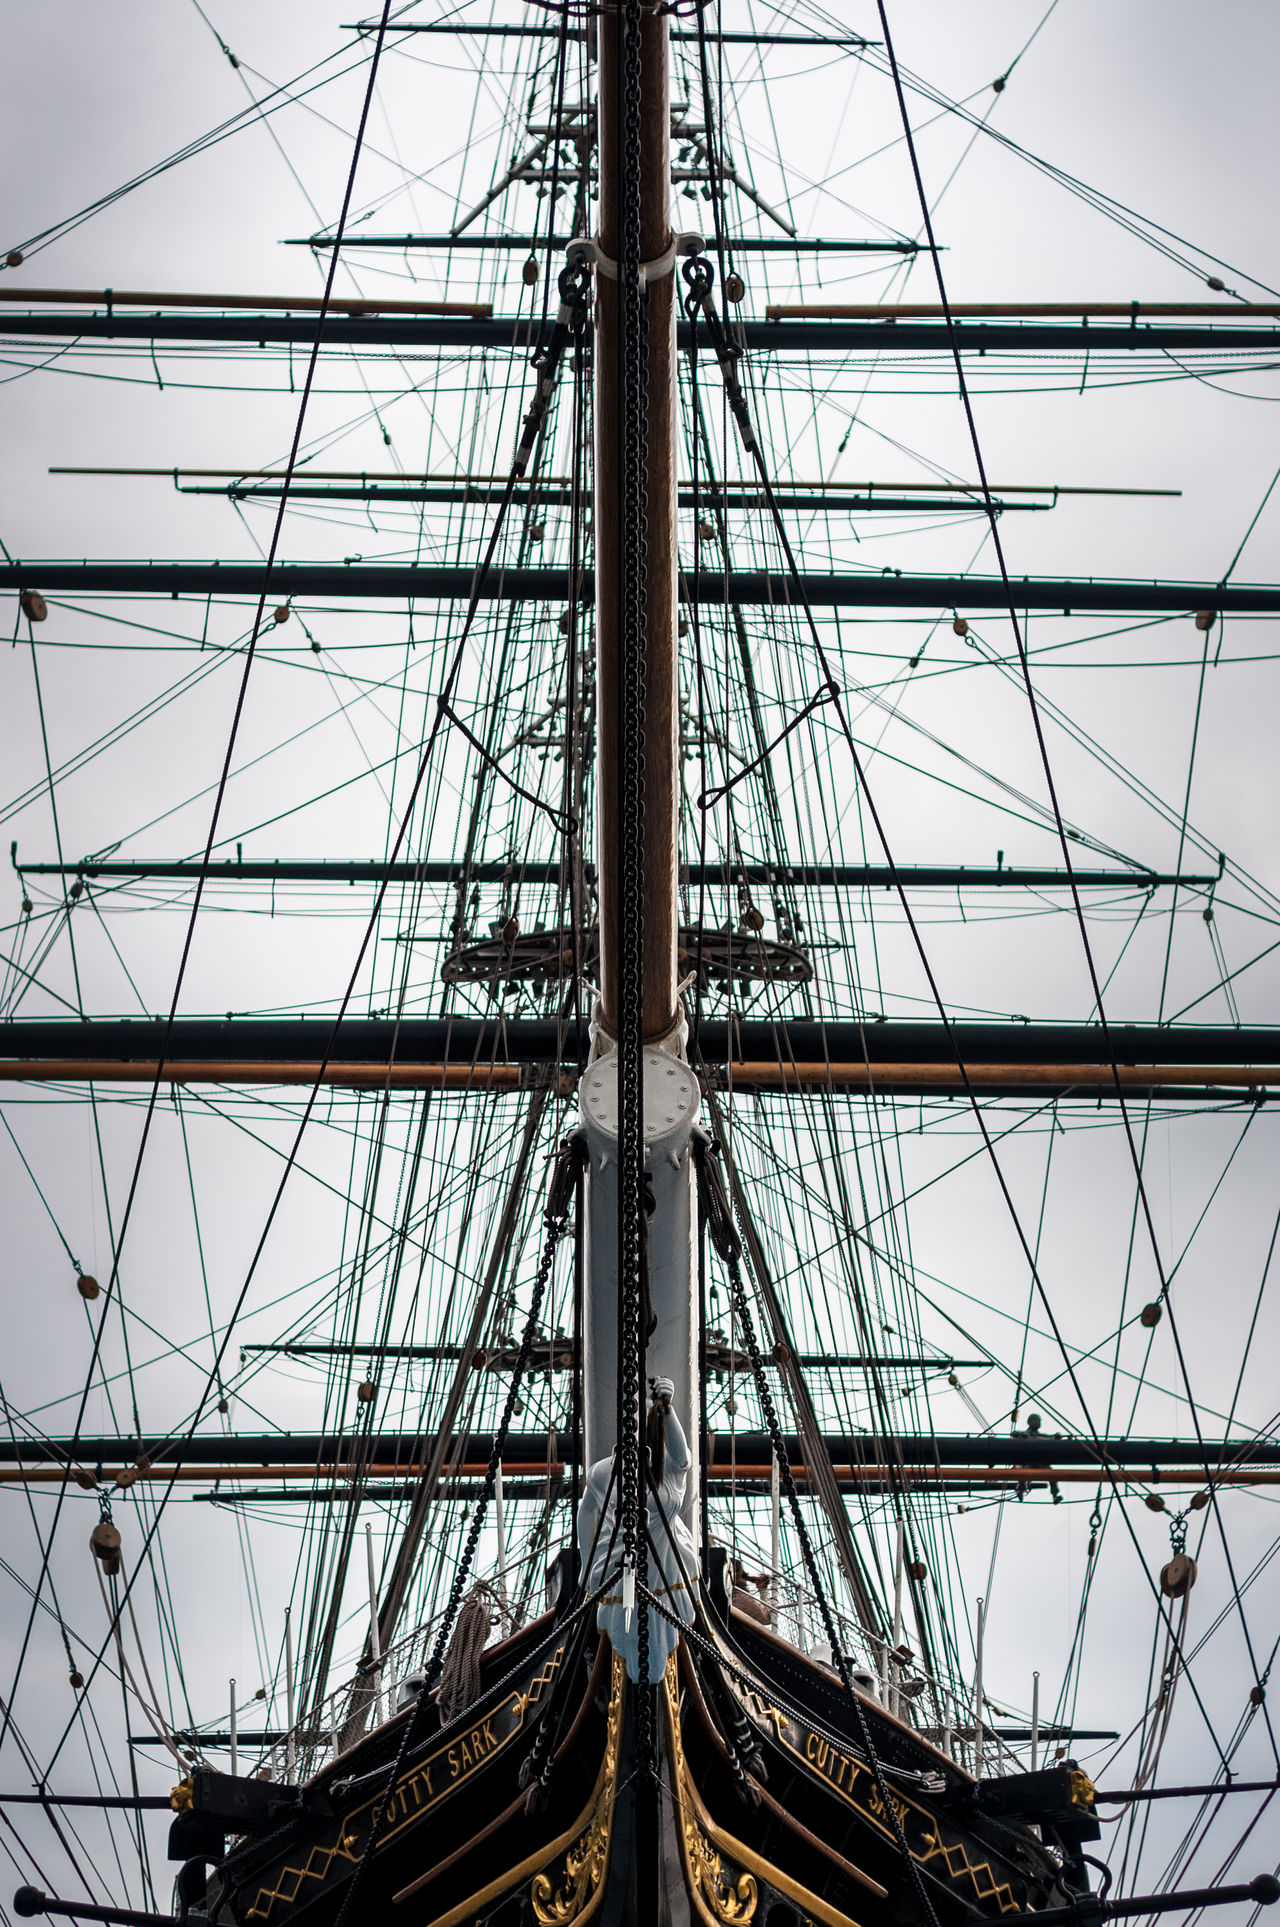 Boat Fregate Cutty Sark Greenwich London Sail Lieblingsteil